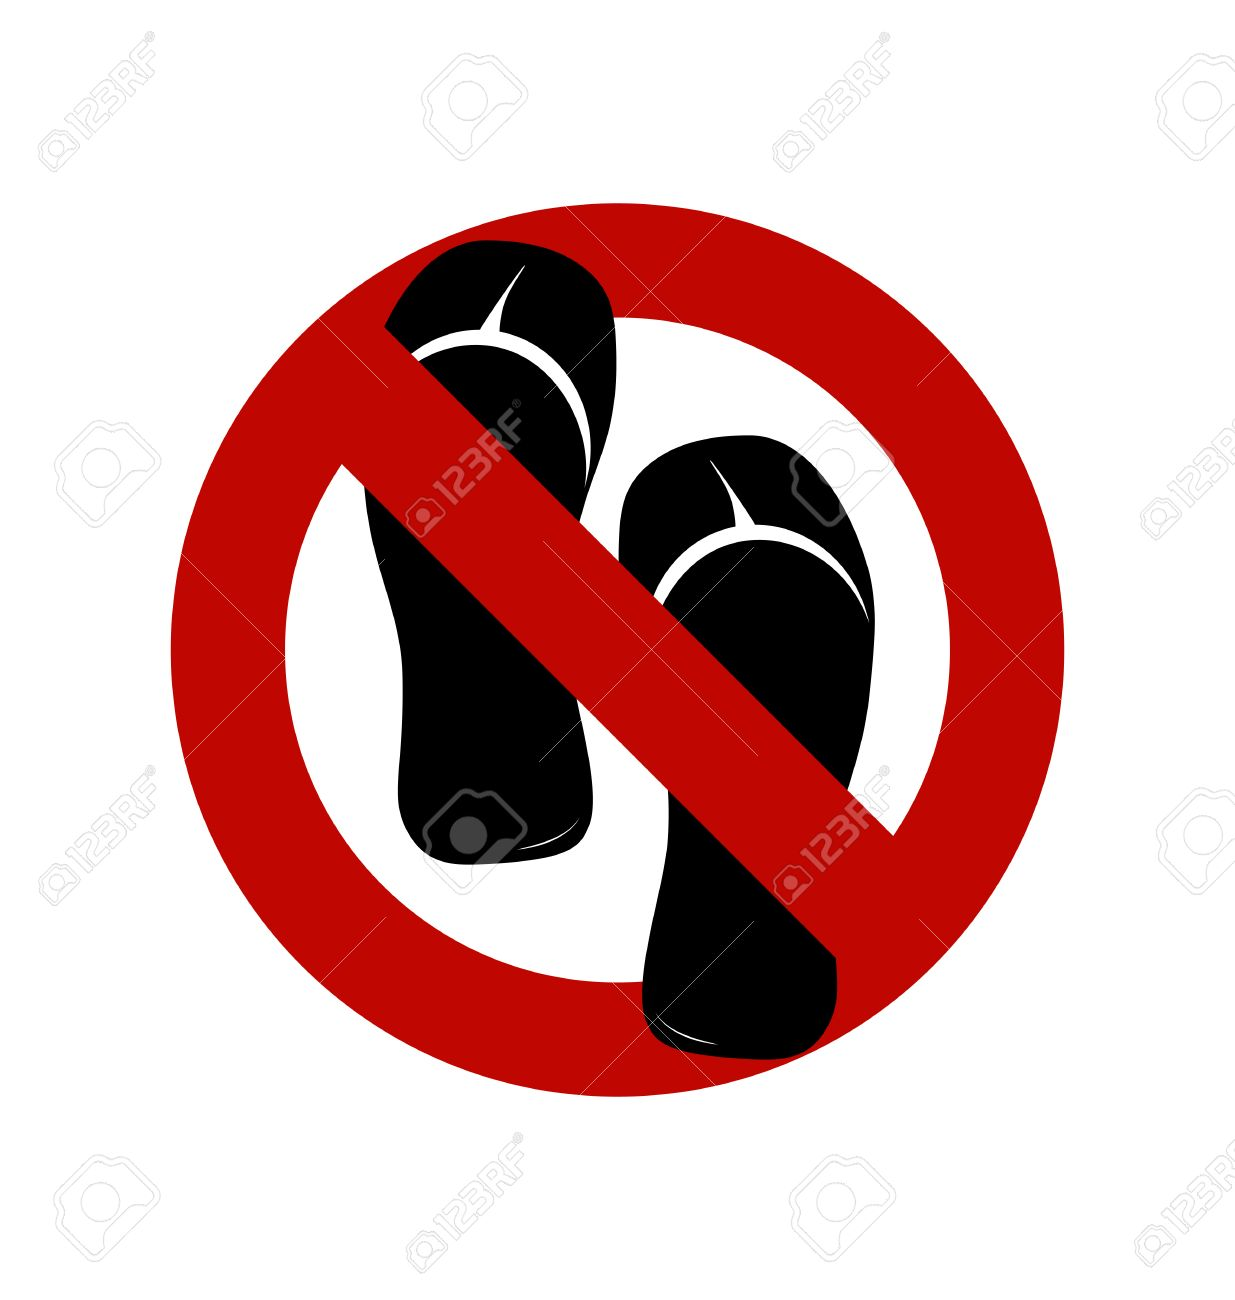 No sandals no shoes no slippers sign on white background no no sandals no shoes no slippers sign on white background no ban buycottarizona